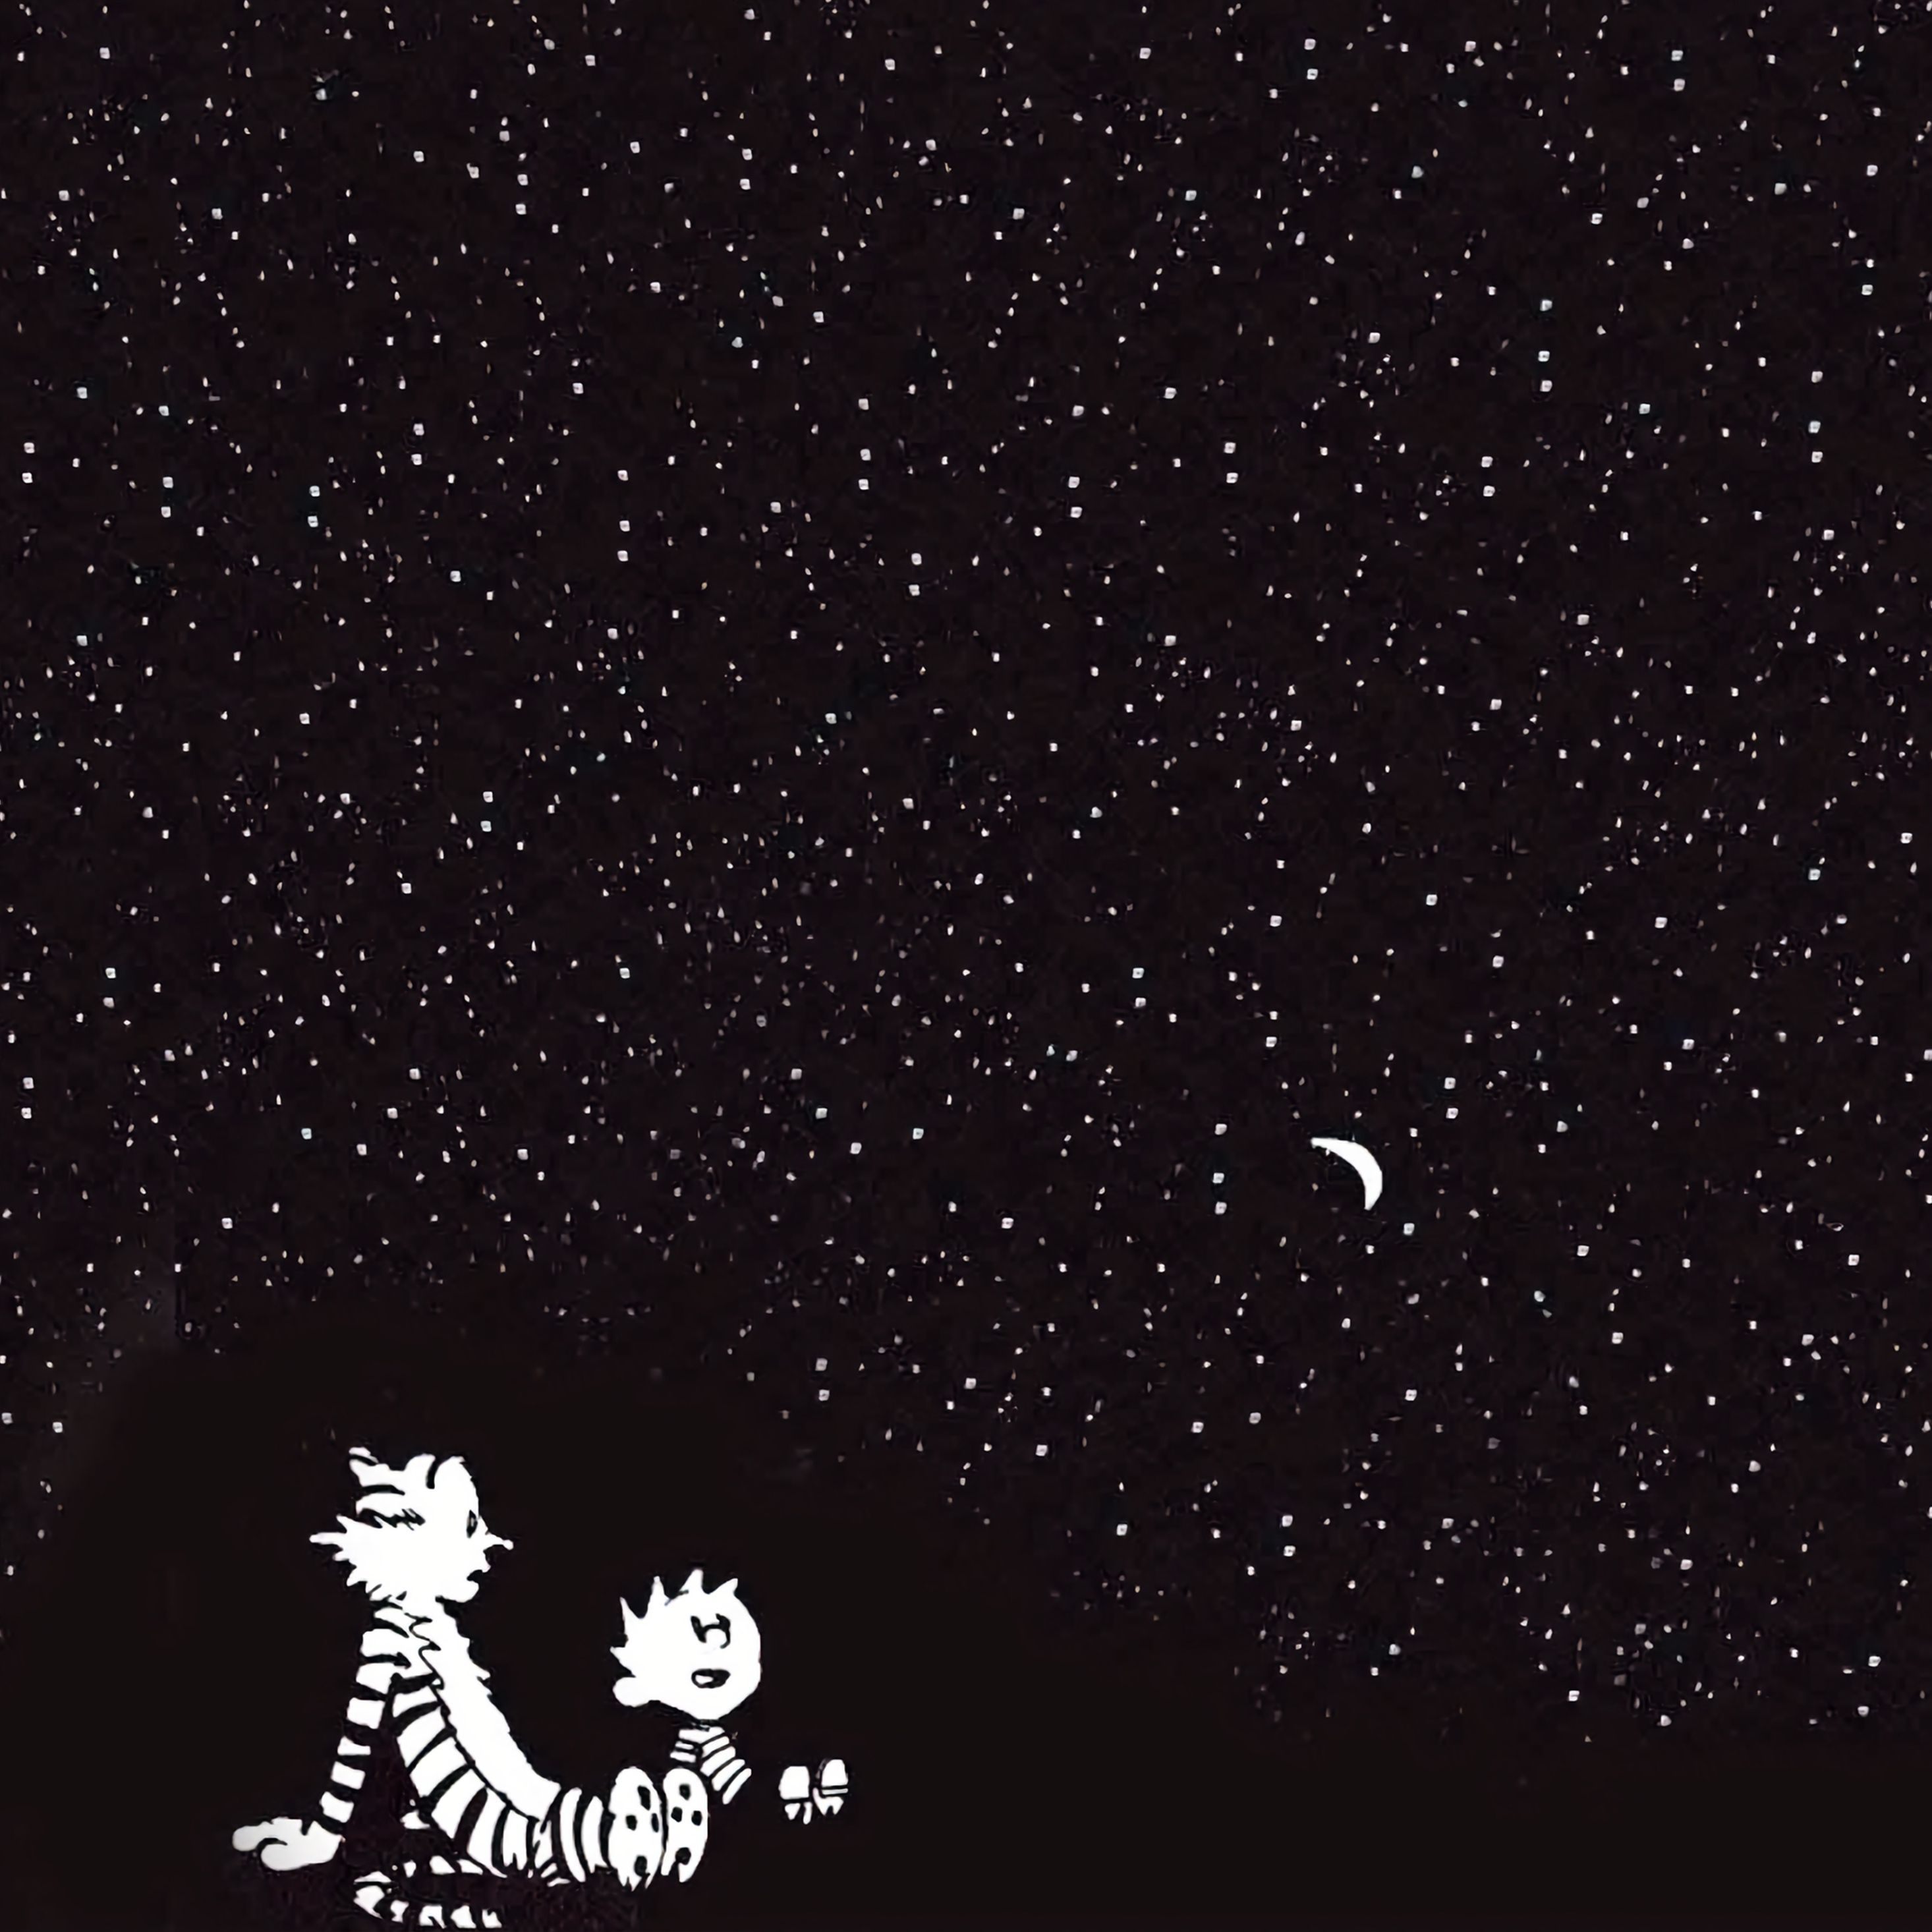 2932x2932 Calvin And Hobbes 4k Ipad Pro Retina Display Hd 4k Wallpapers Images Backgrounds Photos And Pictures